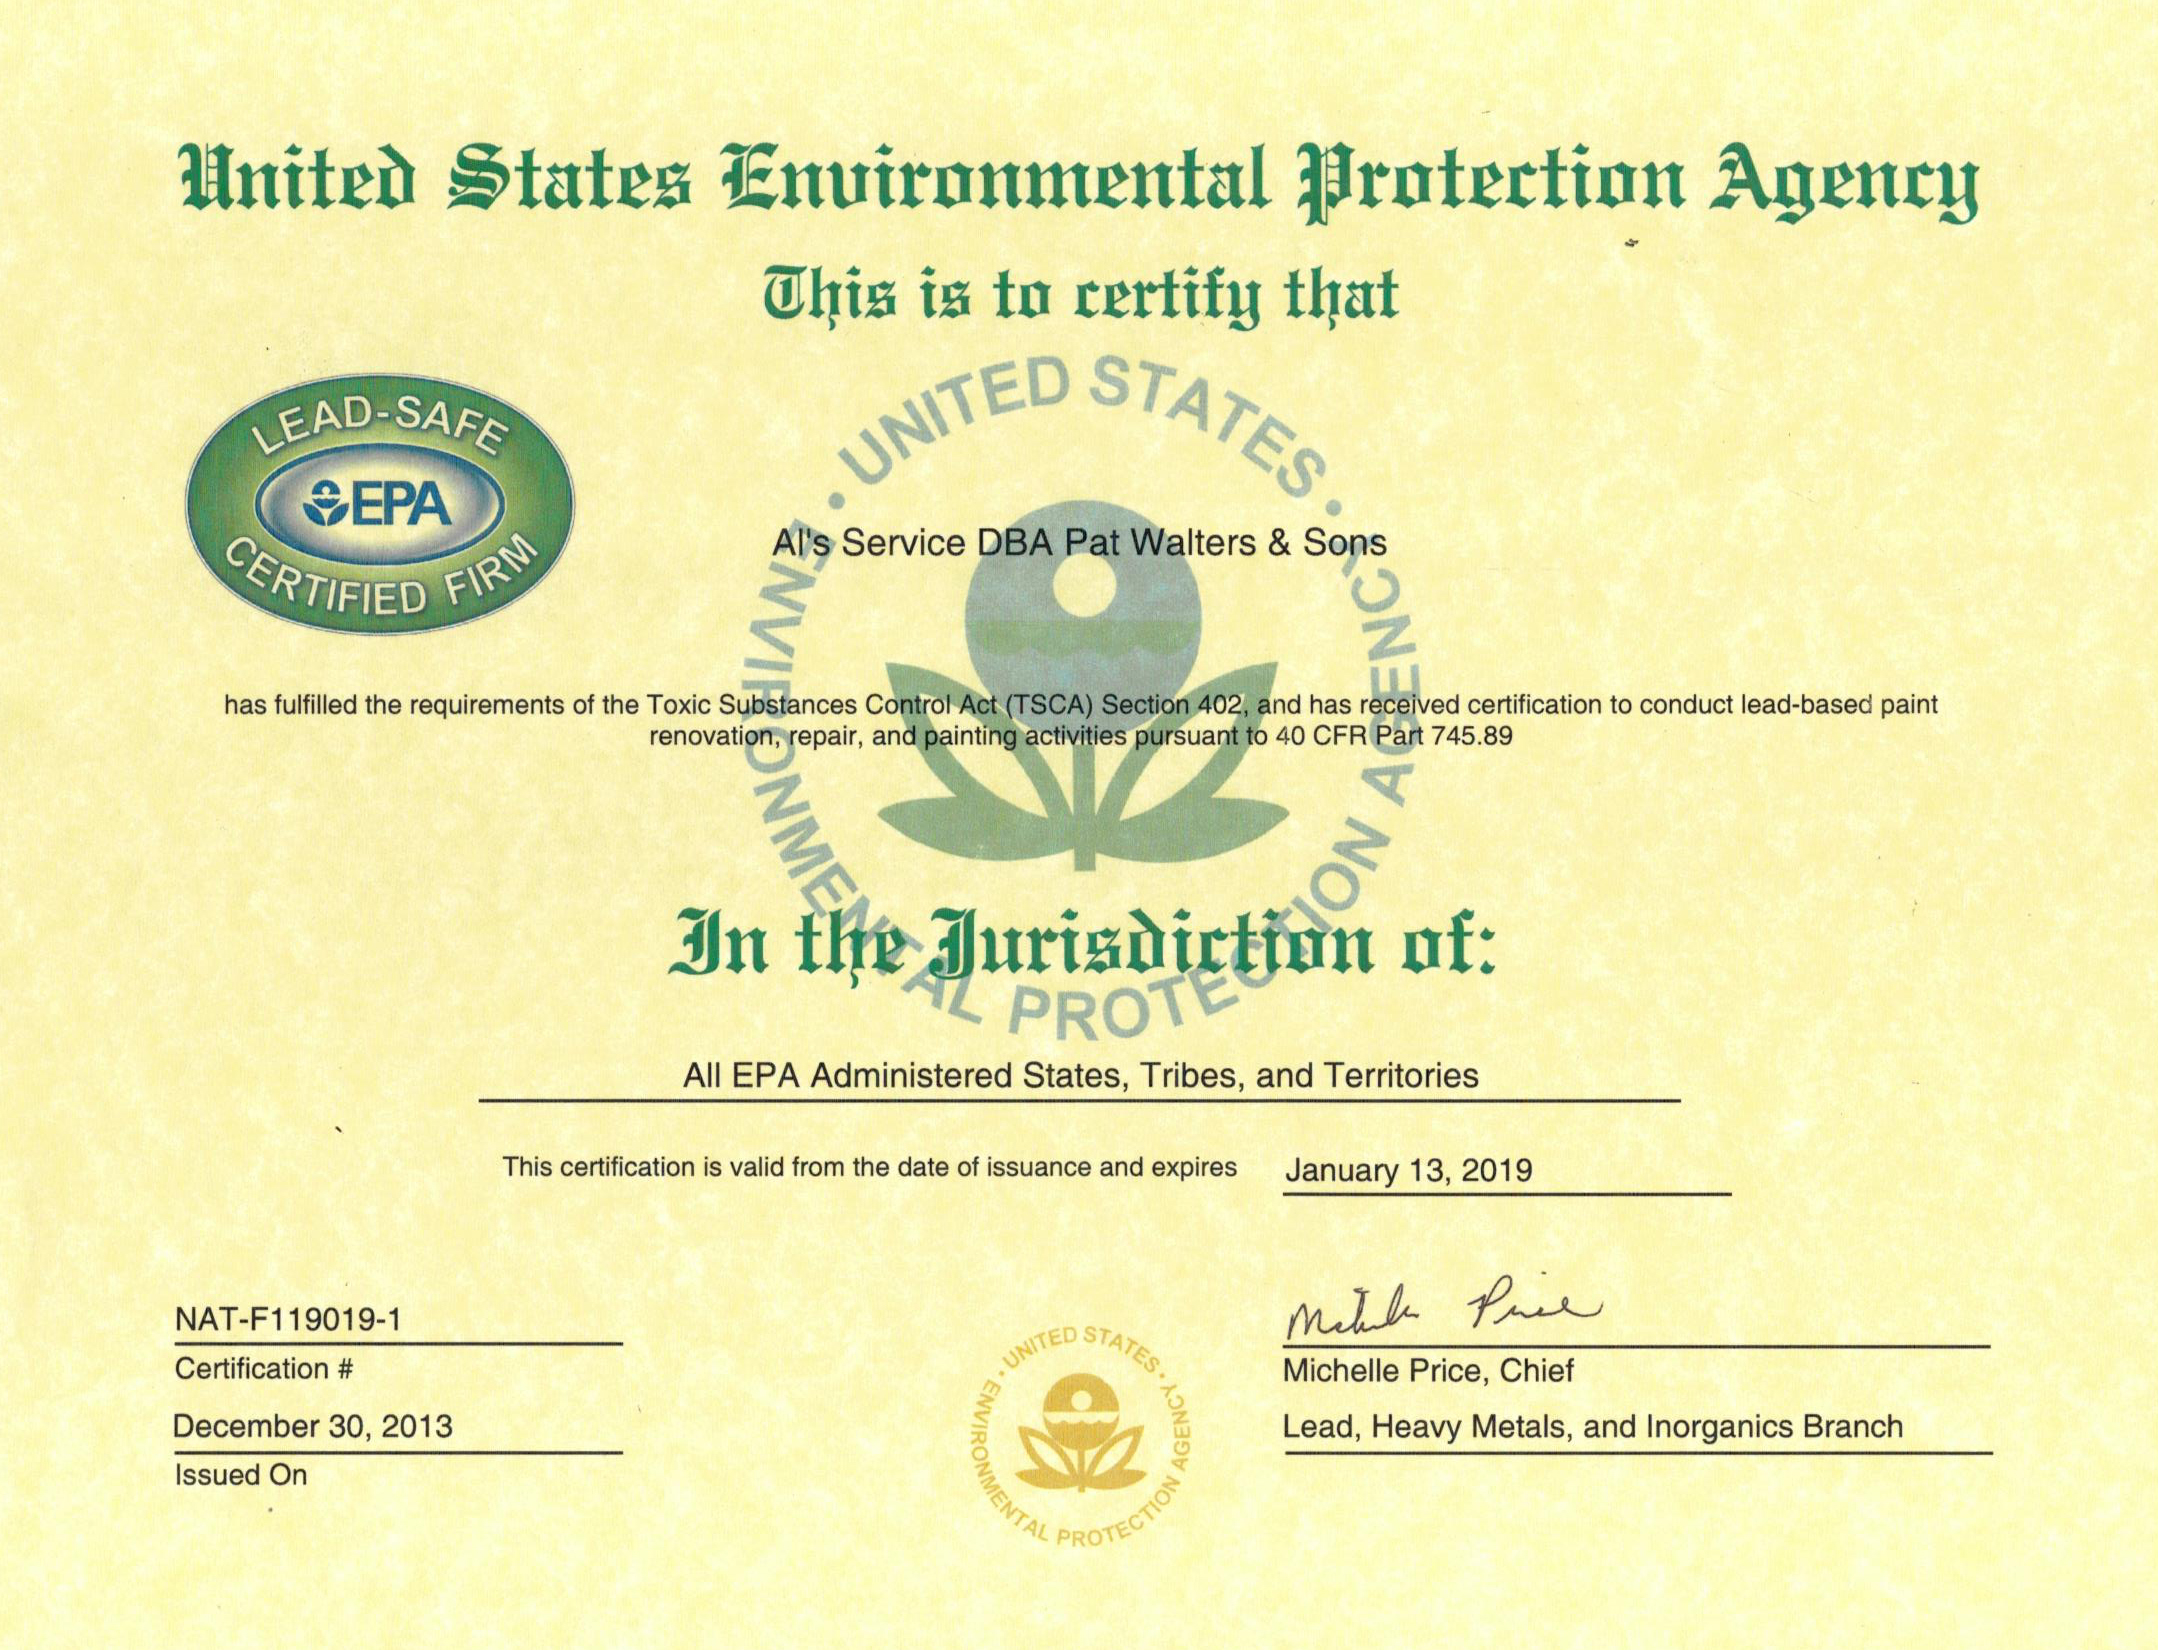 Epa Lead Safe Certified Pat Walters And Sons